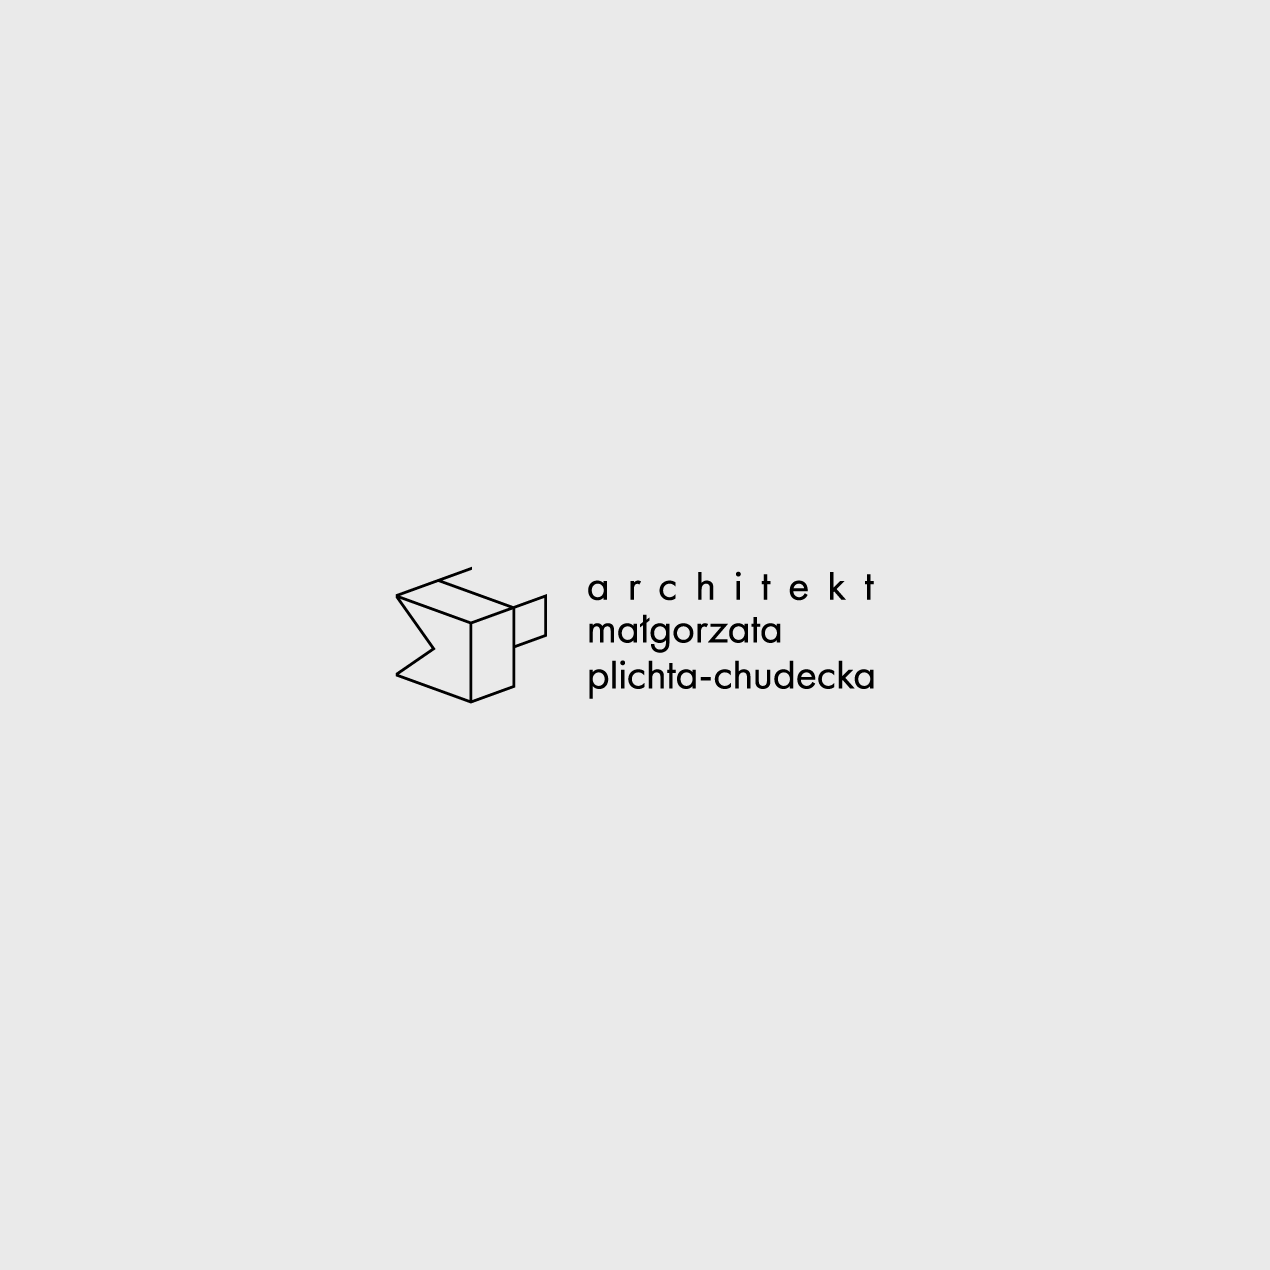 architect logo project